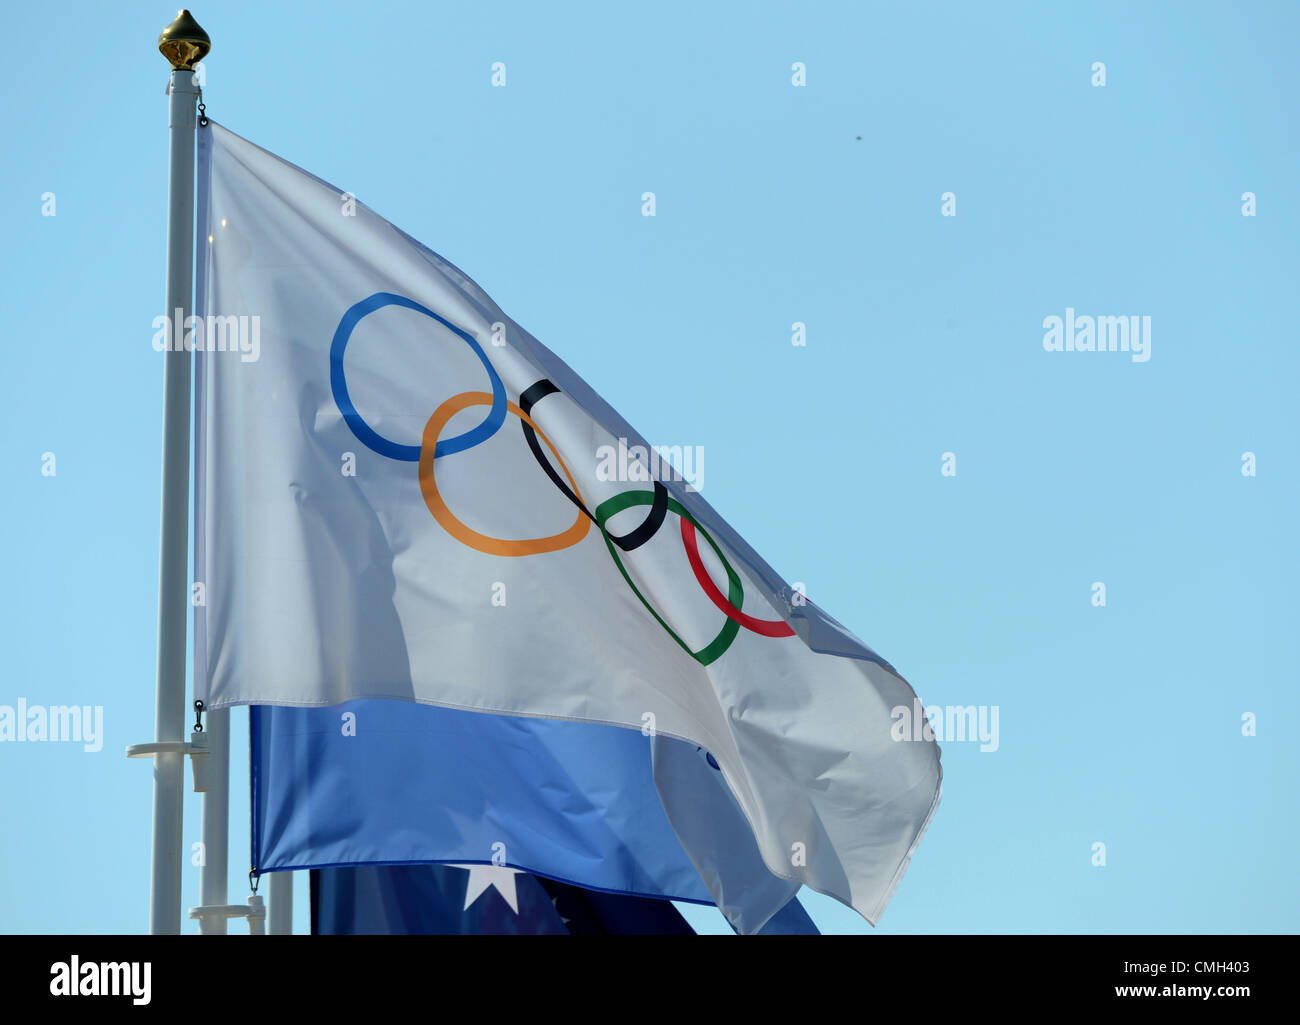 Olympic flag flying alongside flags of the competing nations, 2012 Olympic Games, UK - Stock Image